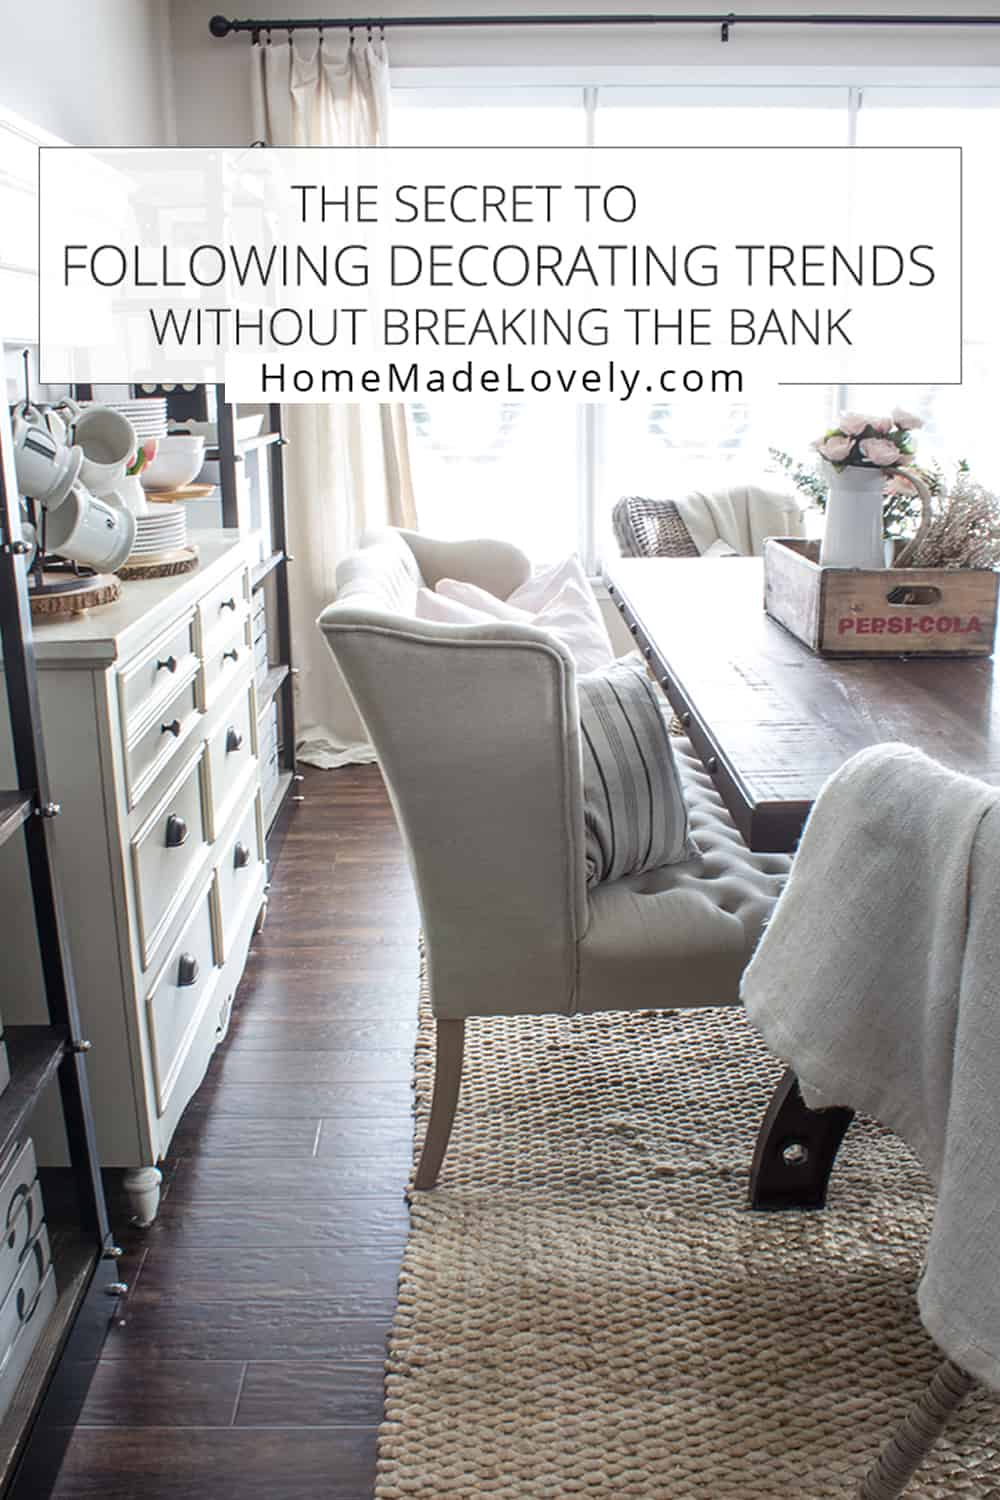 There's a secret I want to tell you. It's rather common sense once you know it. But until then you are likely throwing away $$$ following decorating trends.